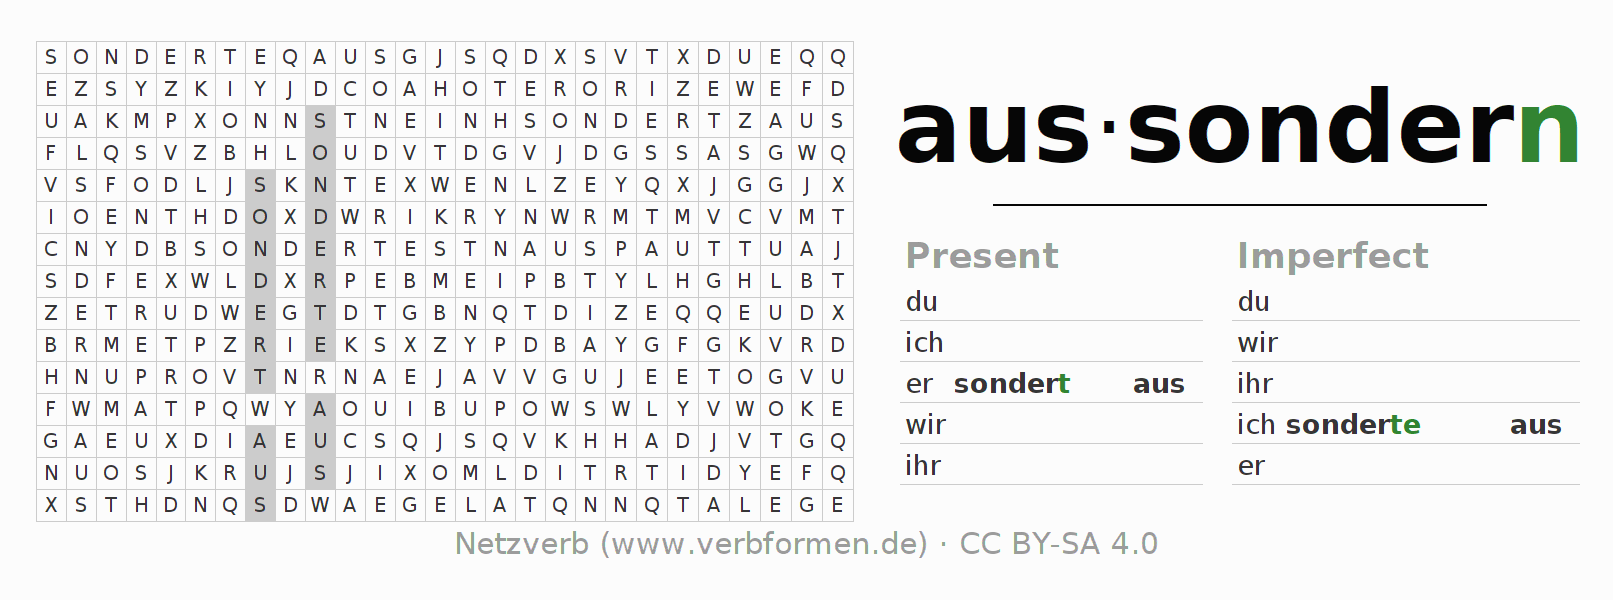 Word search puzzle for the conjugation of the verb aussondern